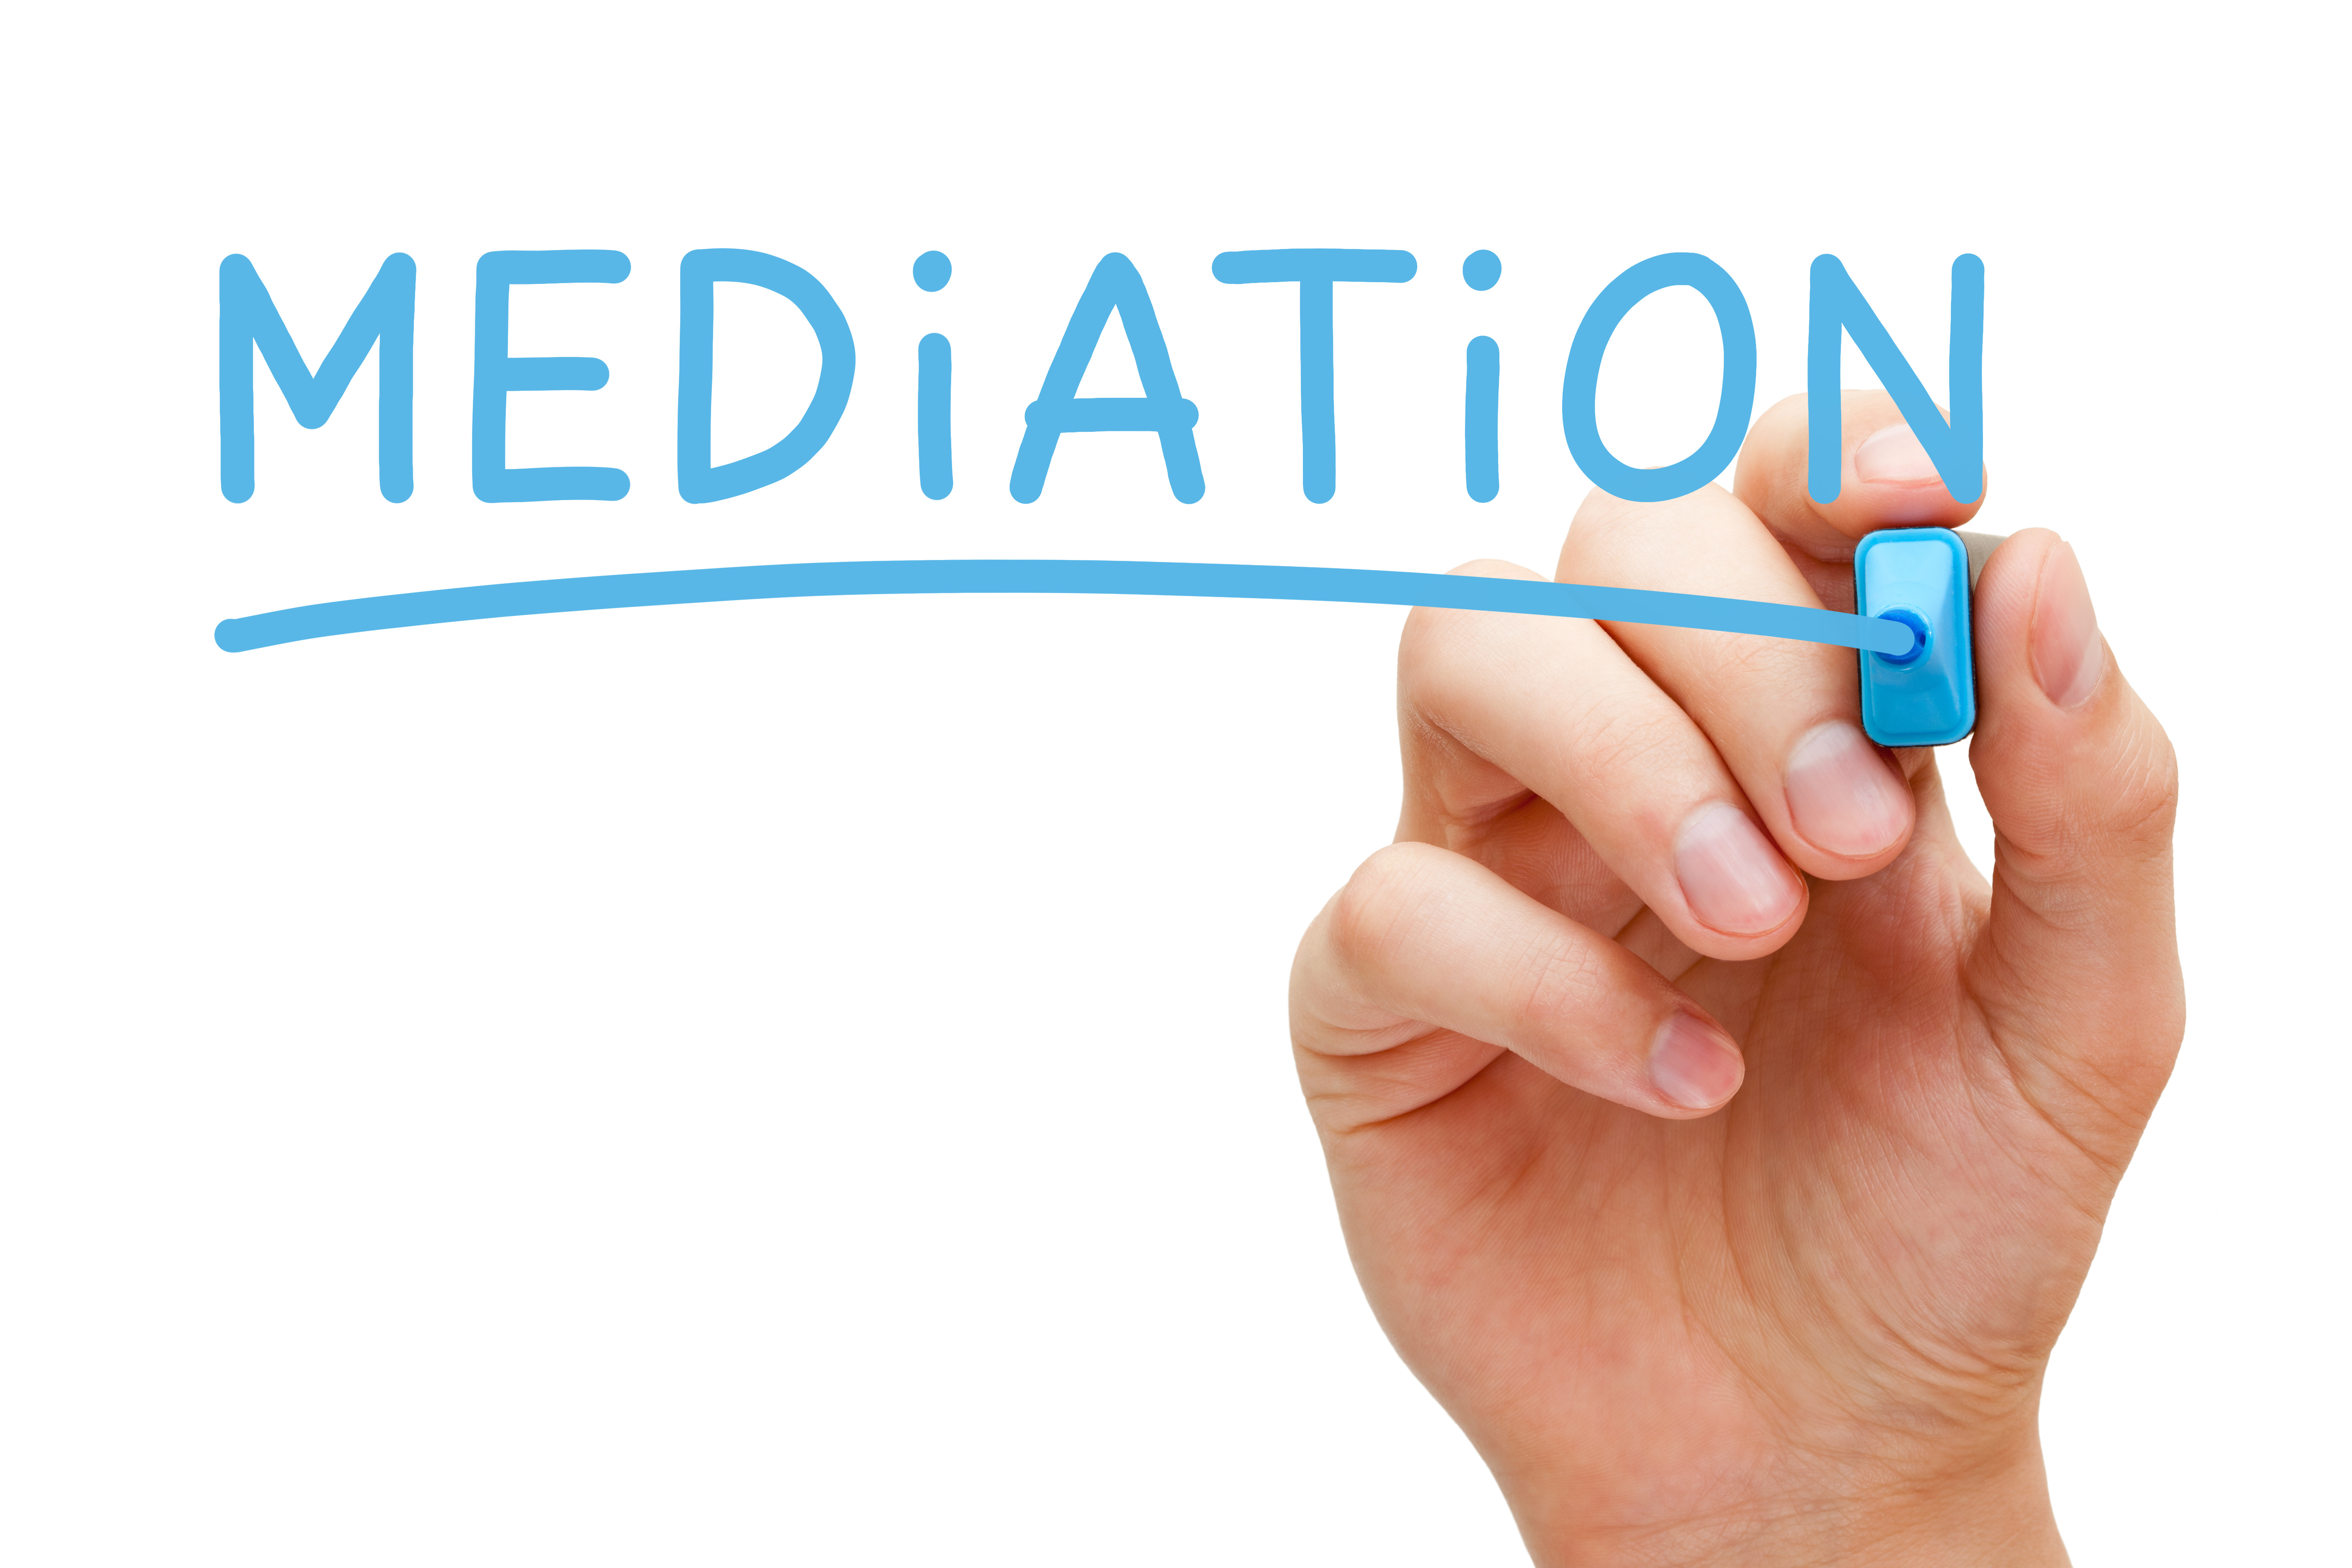 About Mediation